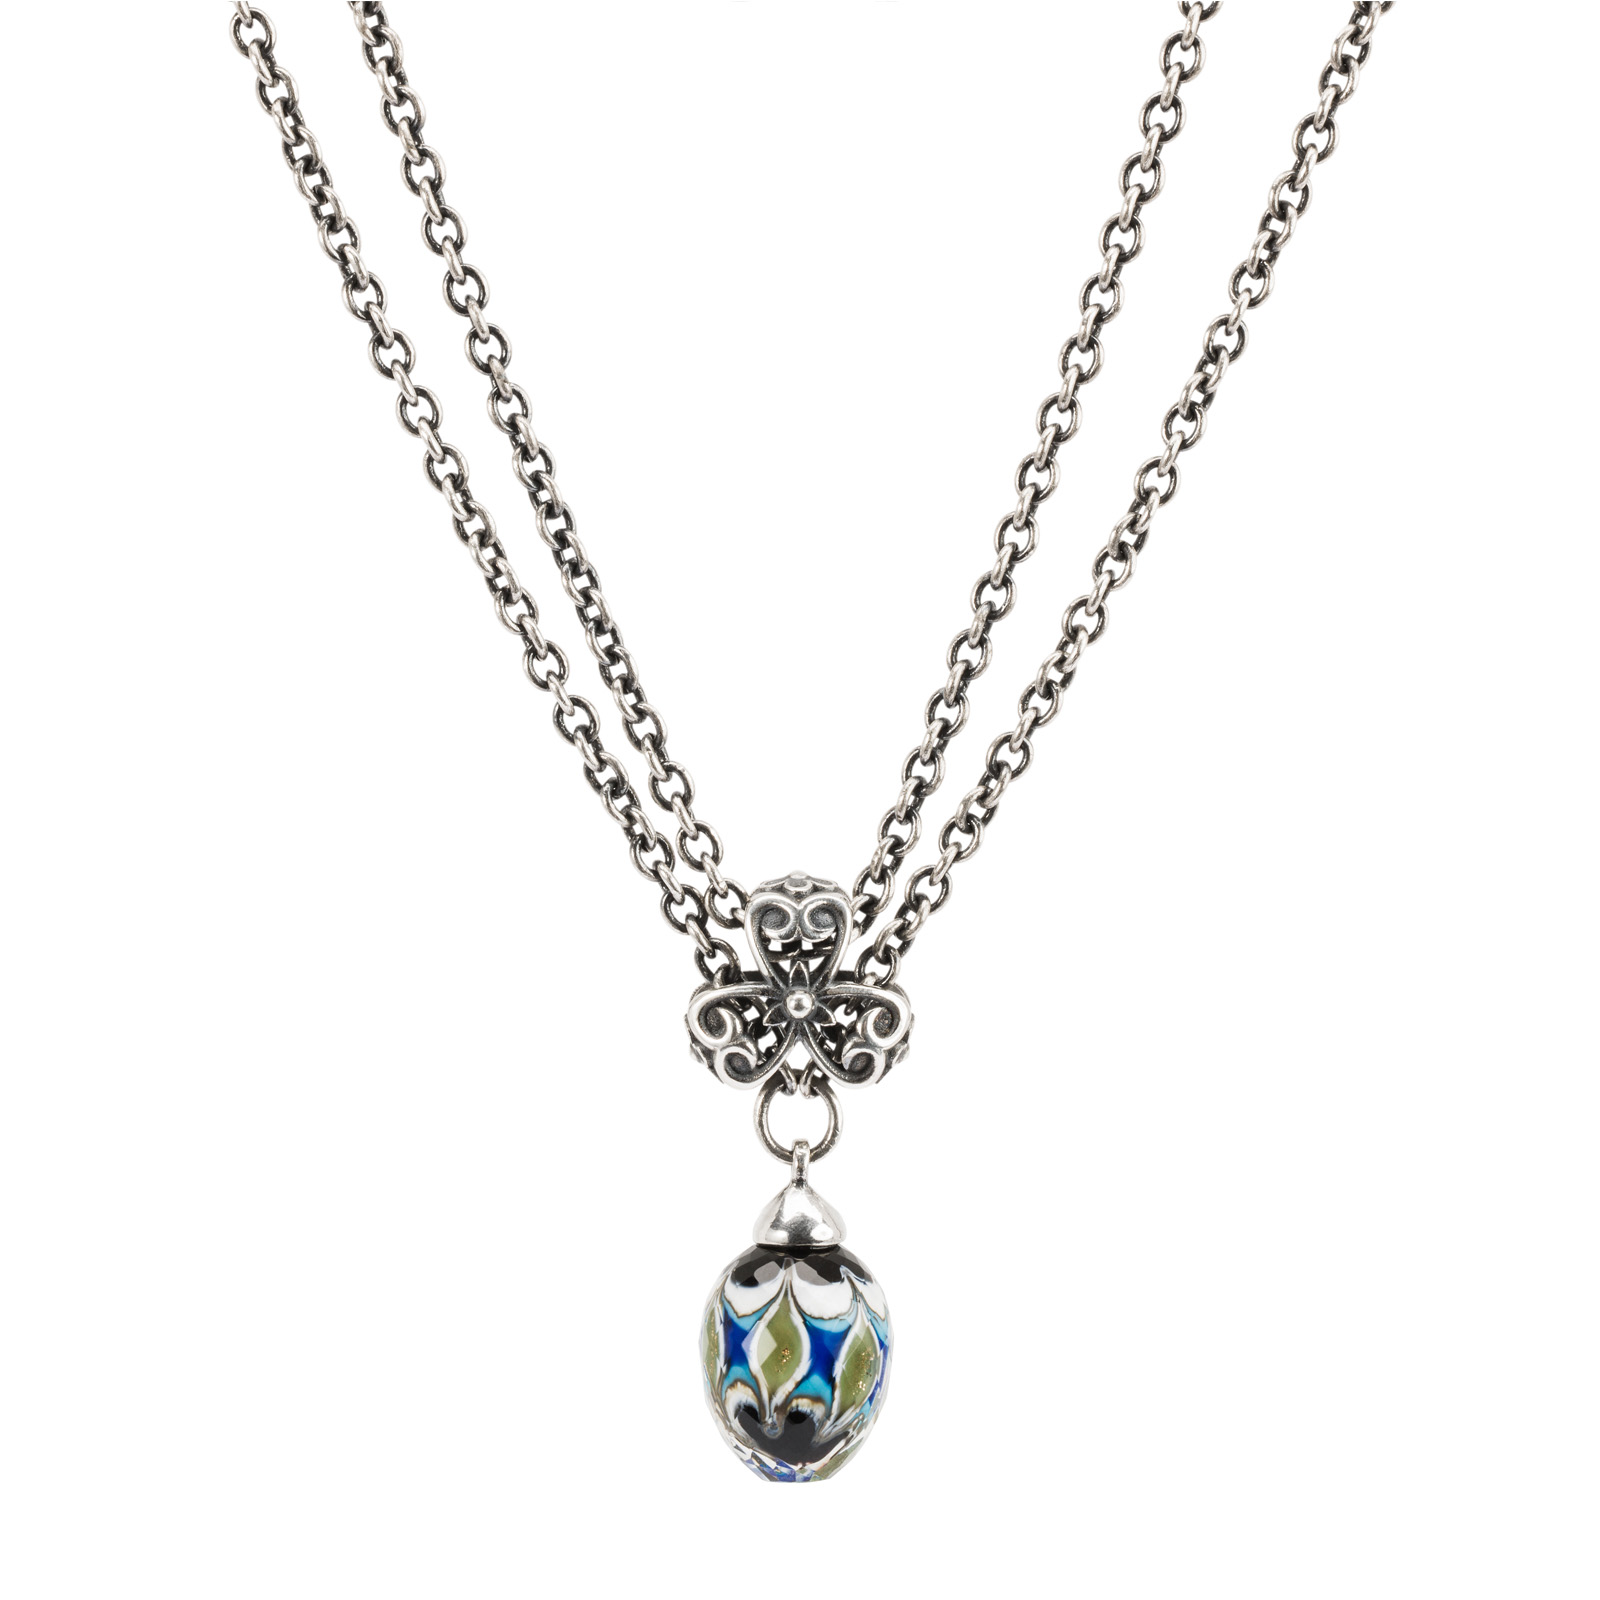 Trollbeads - New Wisdom LE Fantasy Necklace